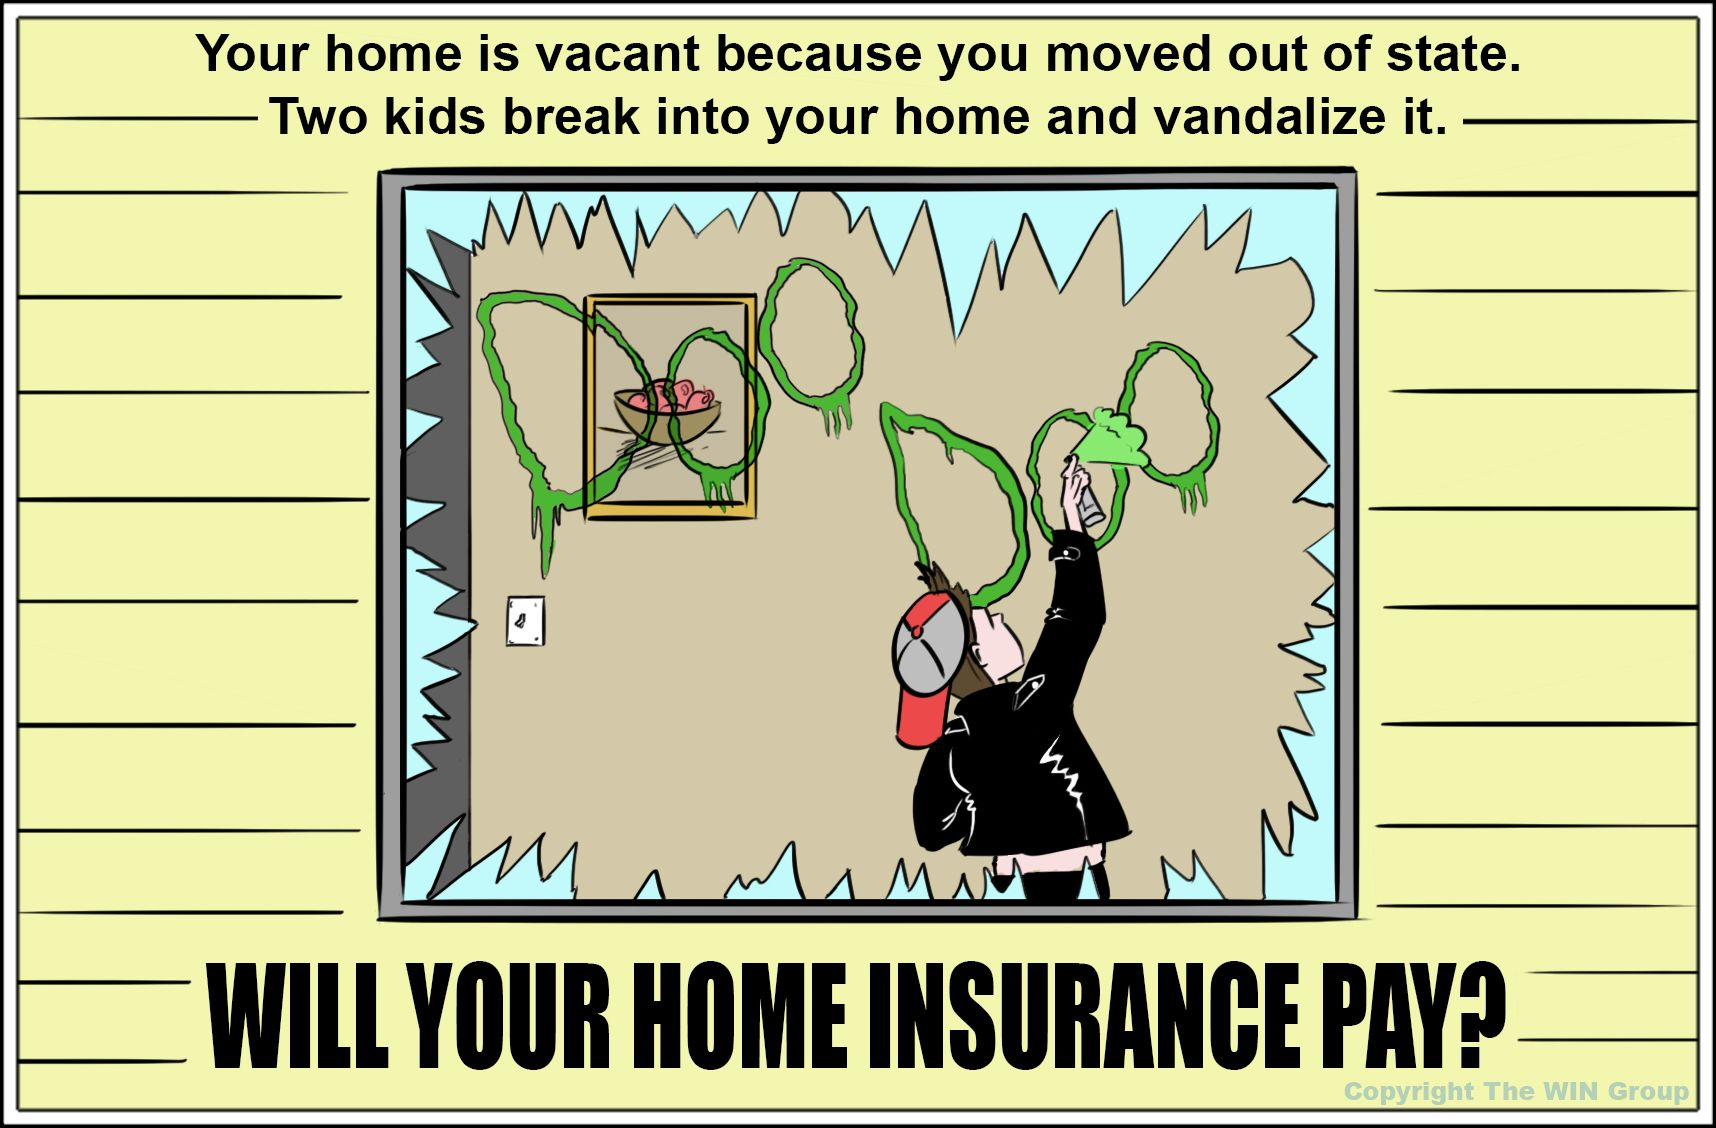 Insurance trivia question You have moved into a new home